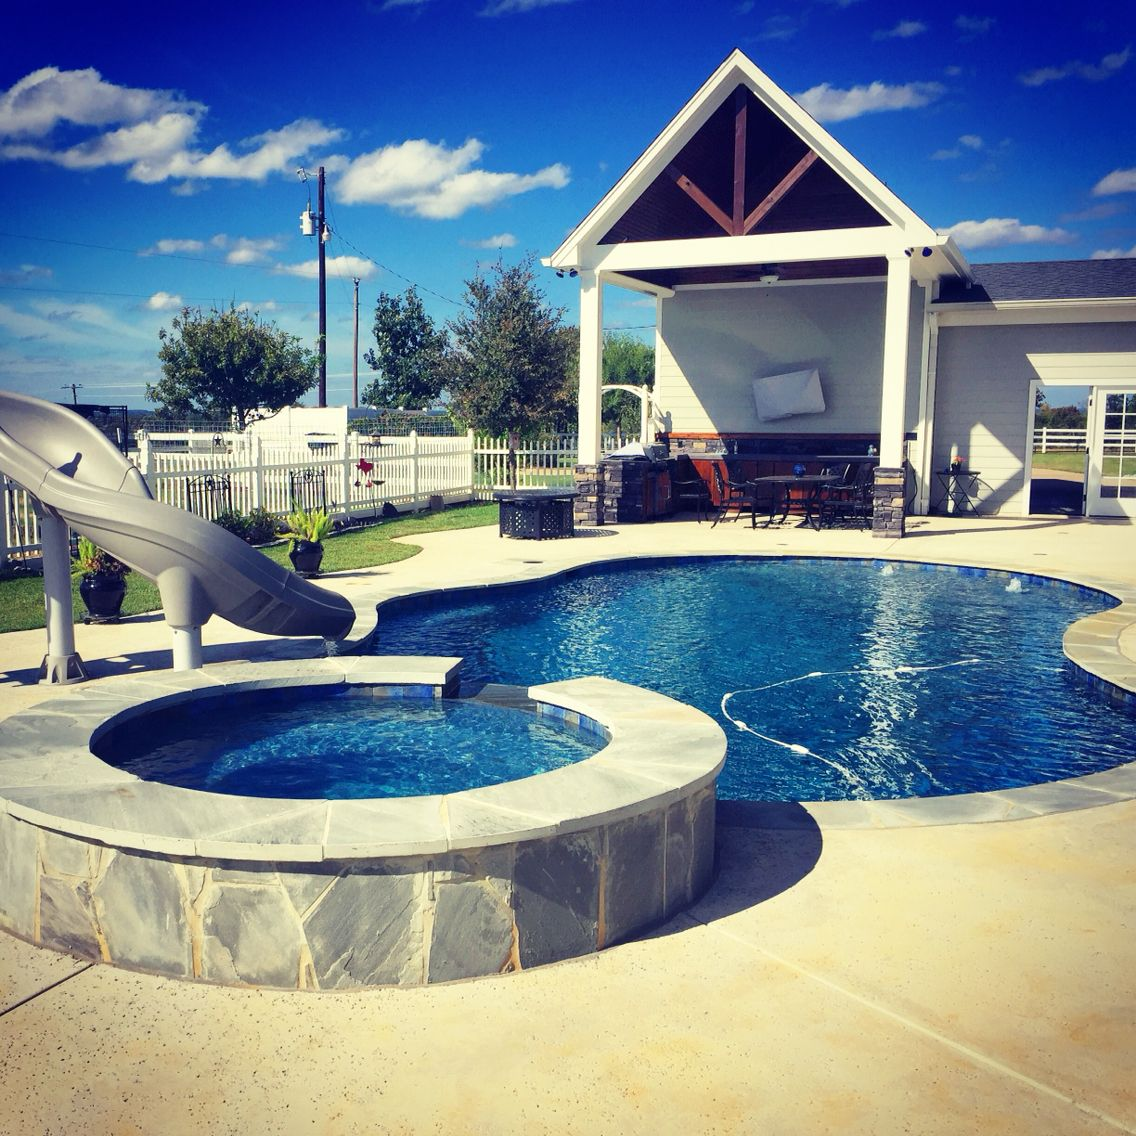 #radius #pool With #slide And #spa #hottub #flagstone #coping.  FlagstoneBackyardsOasisPoolsSpaConstructionBuildingSwimming ...